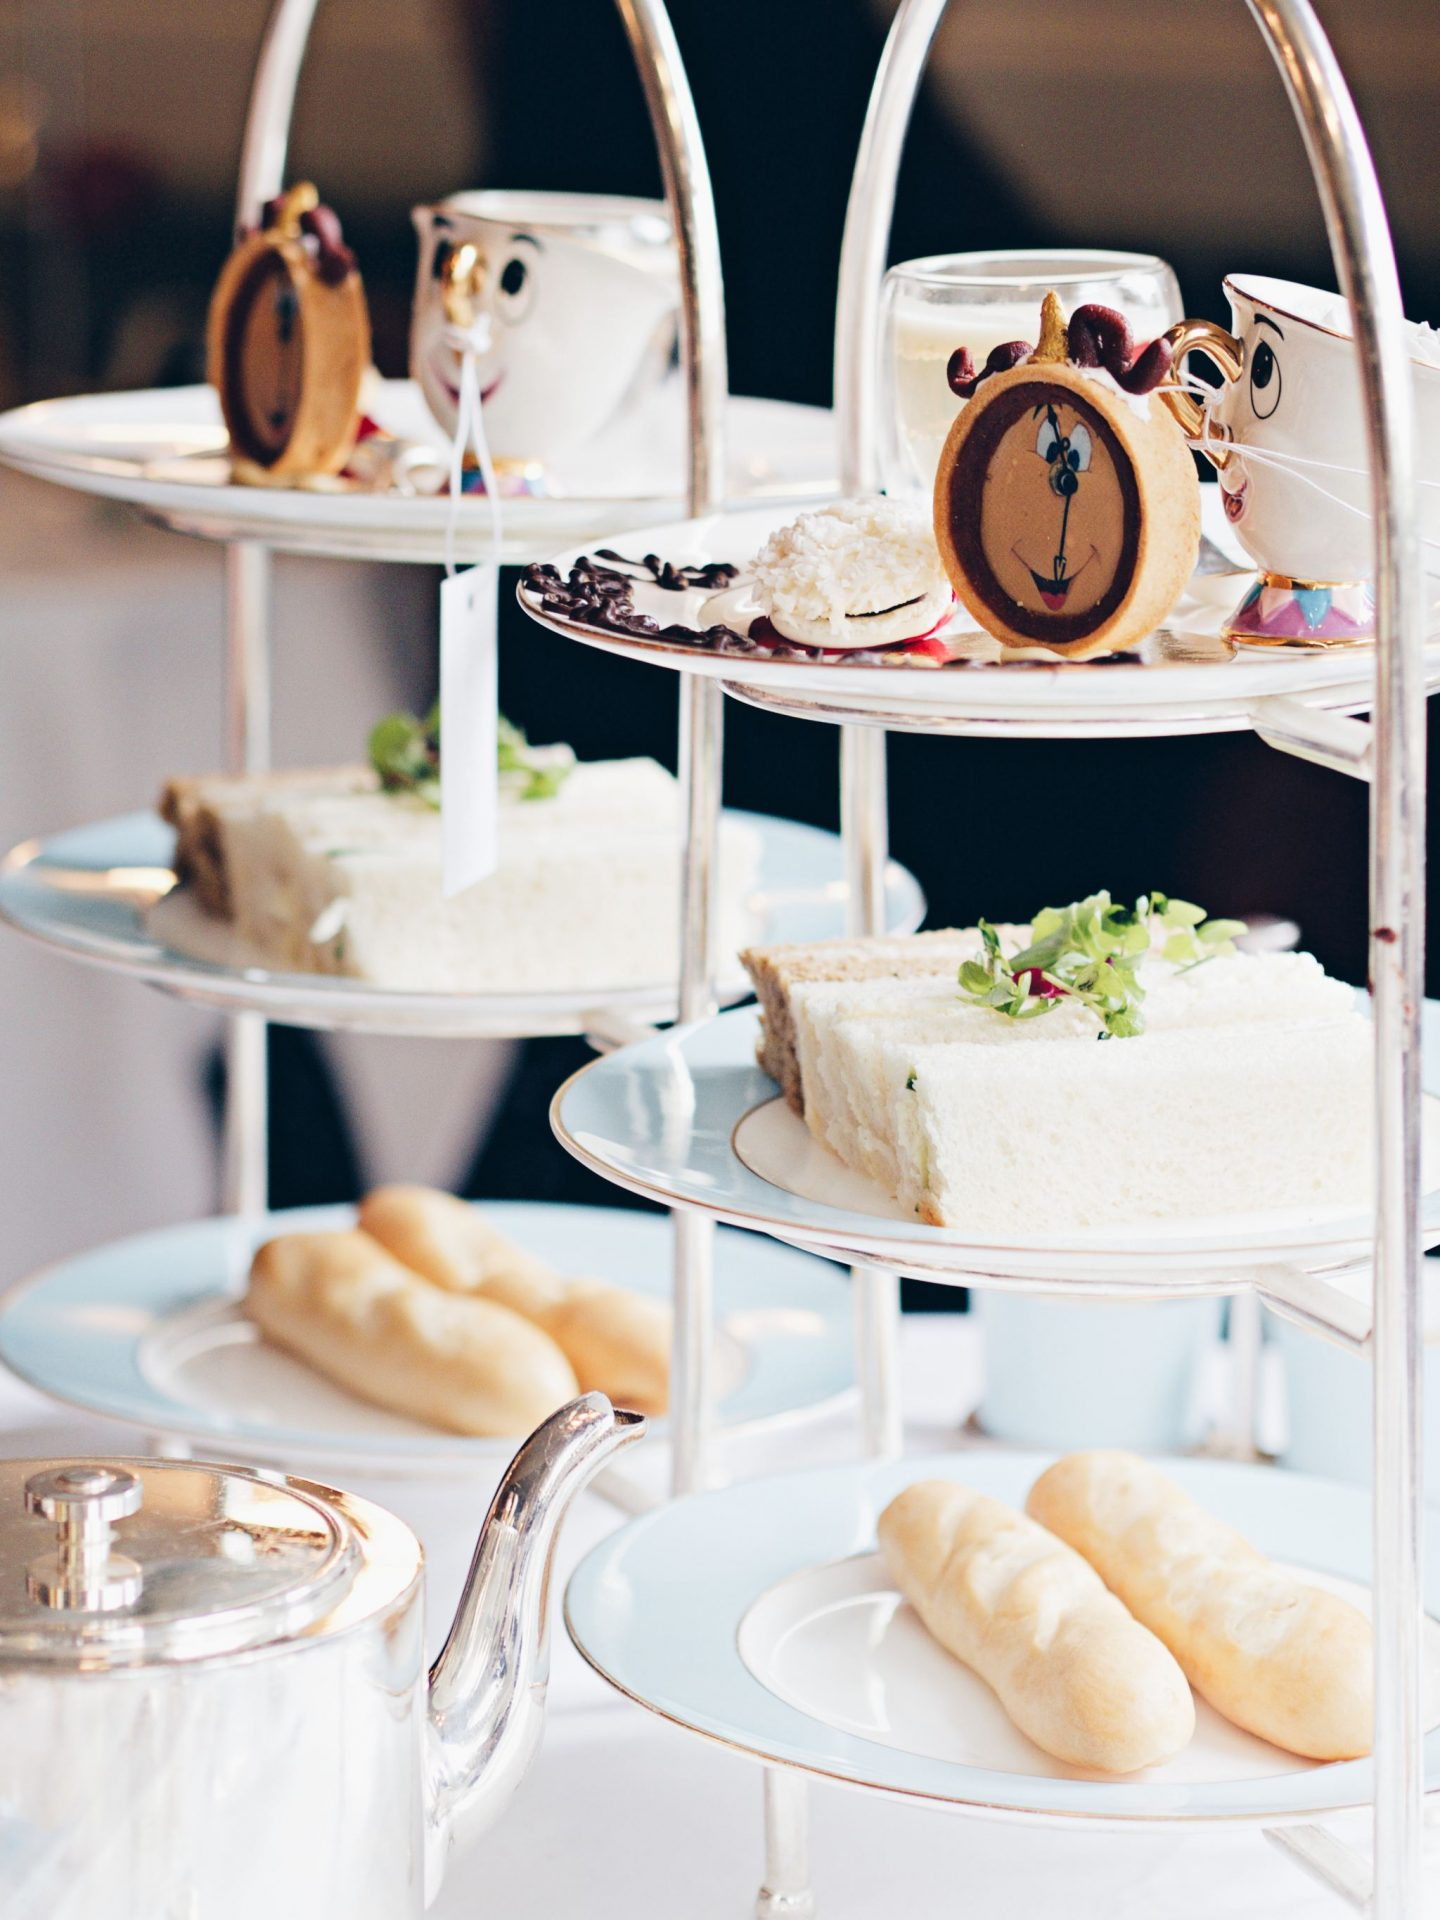 Beauty And The Beast - Tale As Old As Time Afternoon Tea